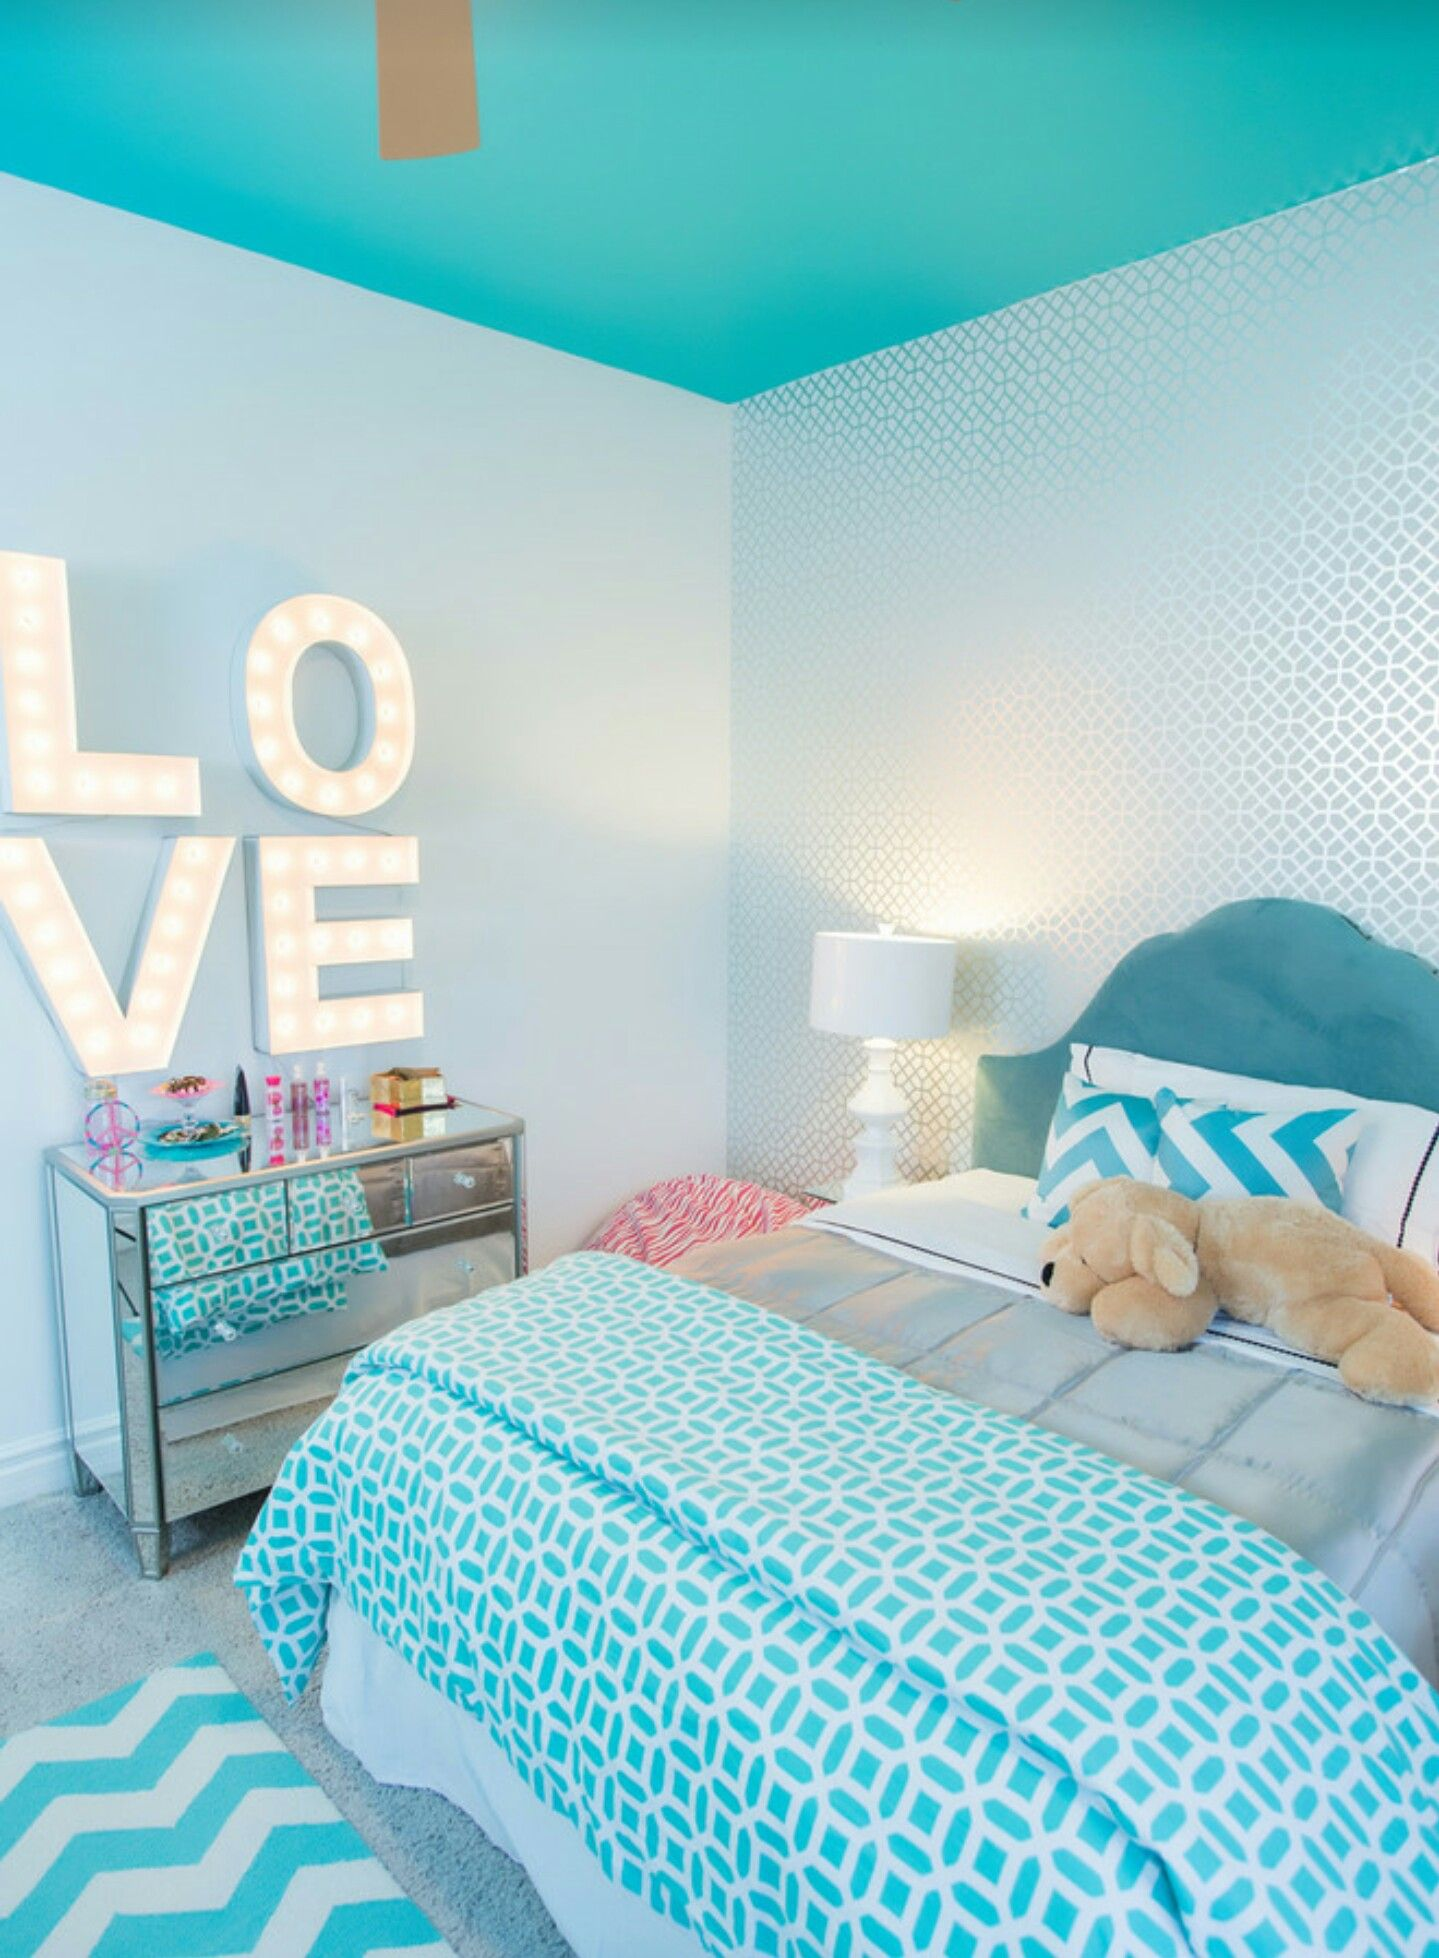 Love y la cajonera gala1 pinterest turquoise Blue teenage bedroom